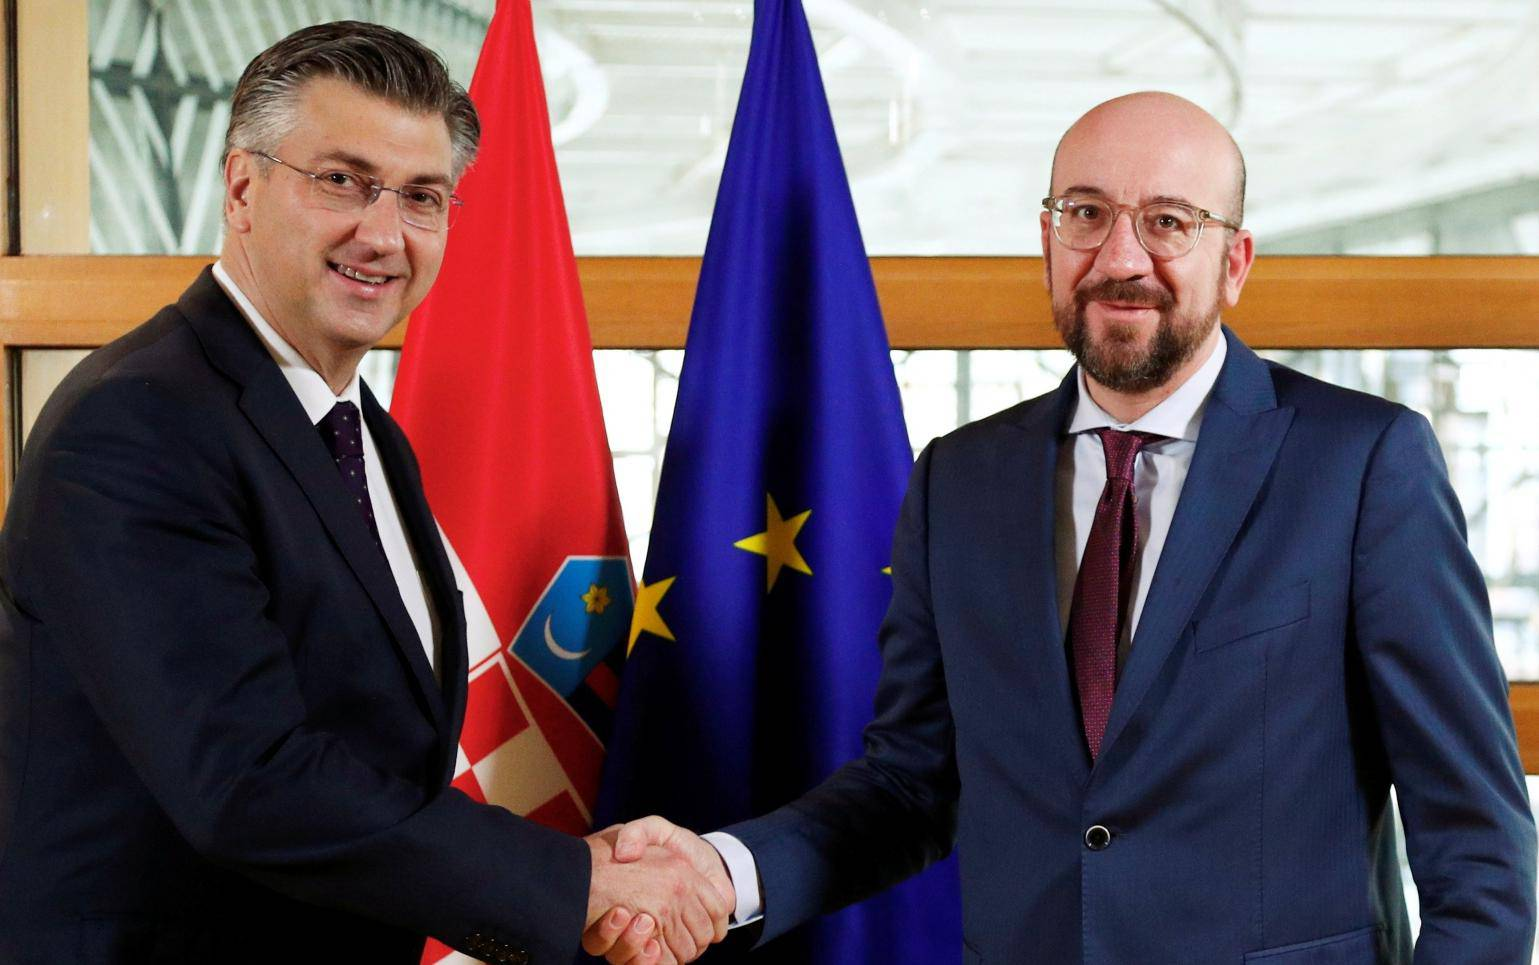 Croatia's PM Plenkovic shakes hands with EU Council President Michel in Brussels